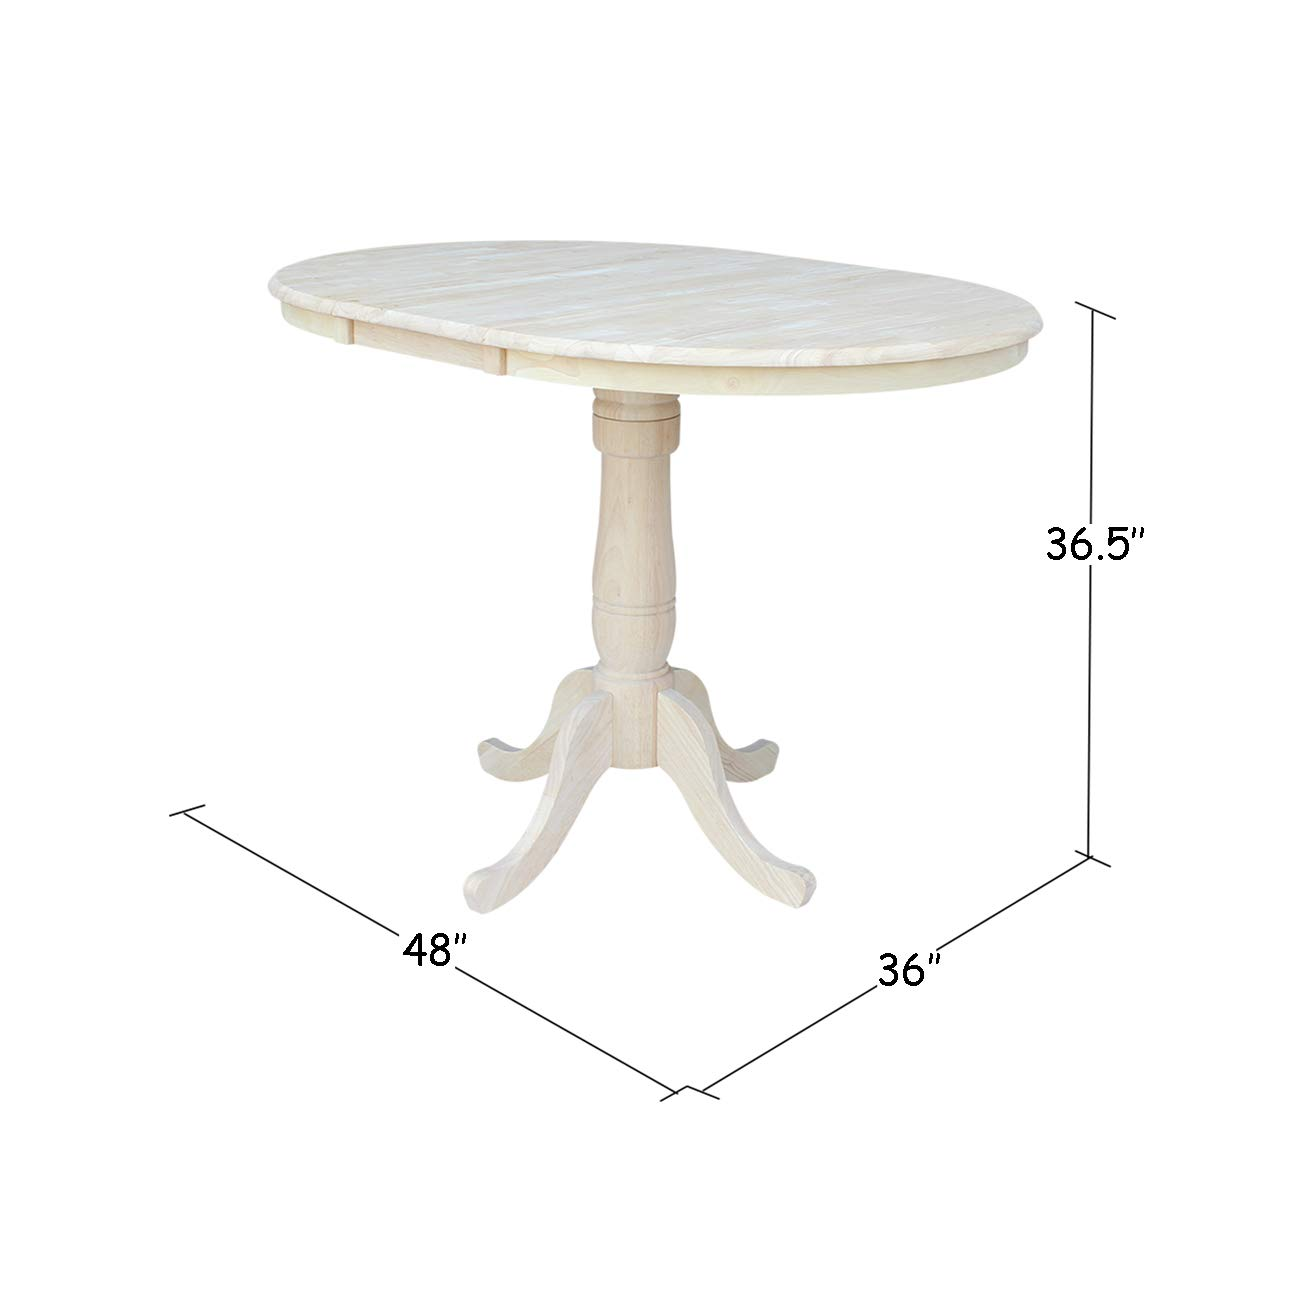 International Concepts 36-Inch Round Extension Counter Height Table with 12-Inch Leaf